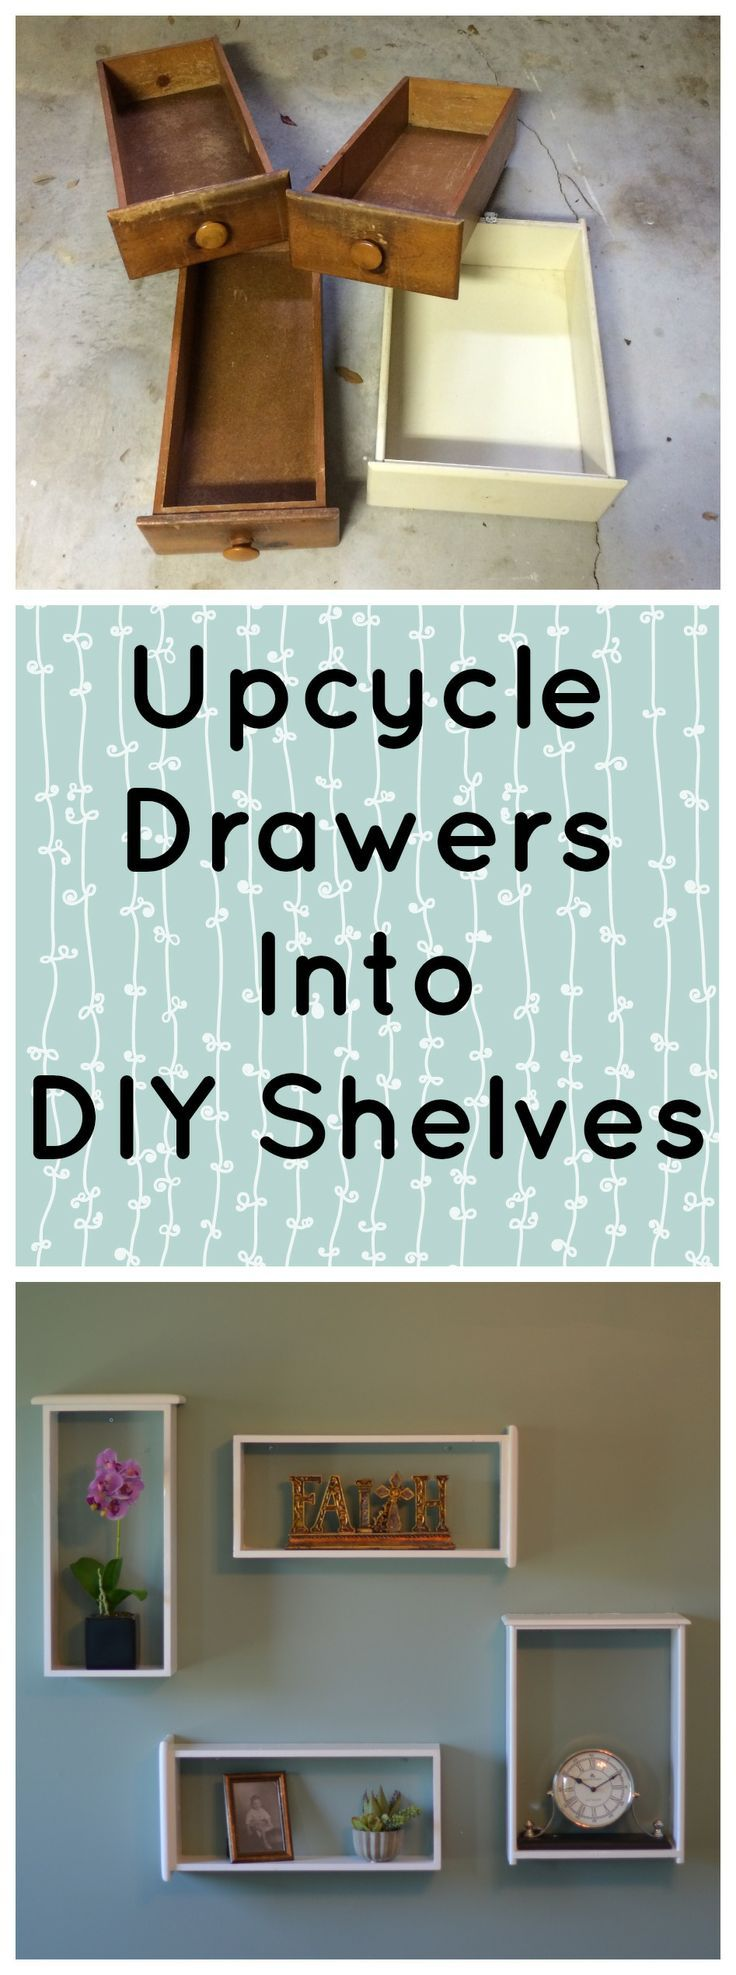 Drawer Shelves/ you can make it with family or friends it is a really good idea